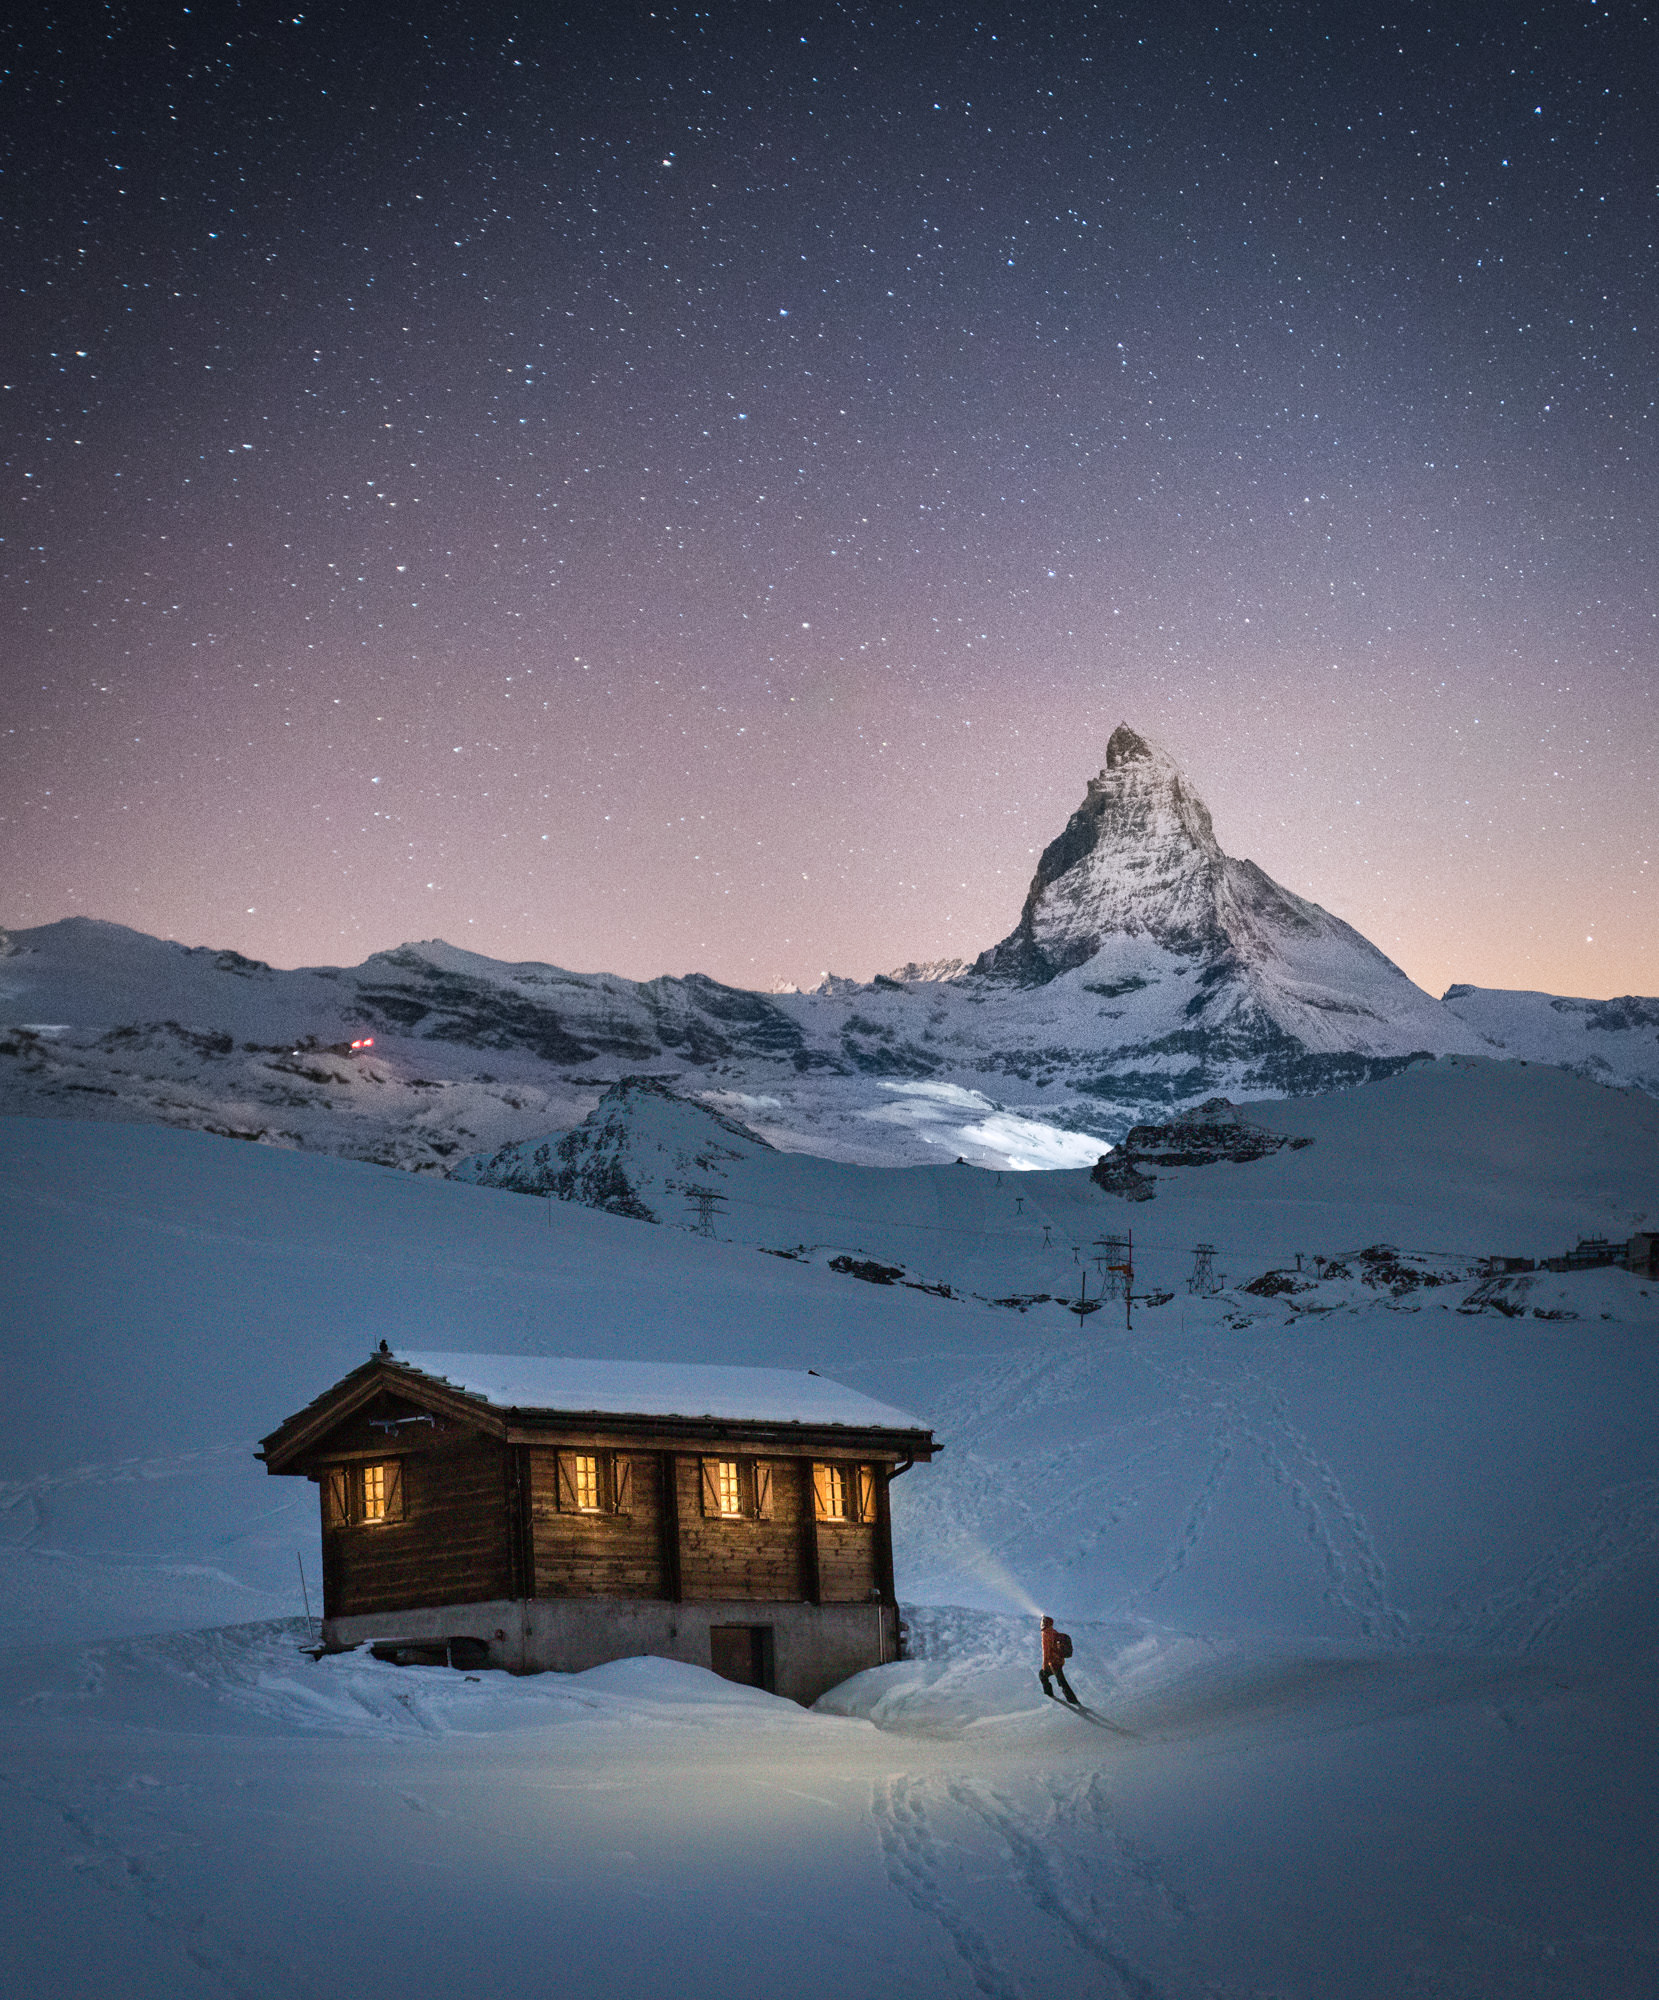 A man walking into a log cabin in the snow in the mountains at night